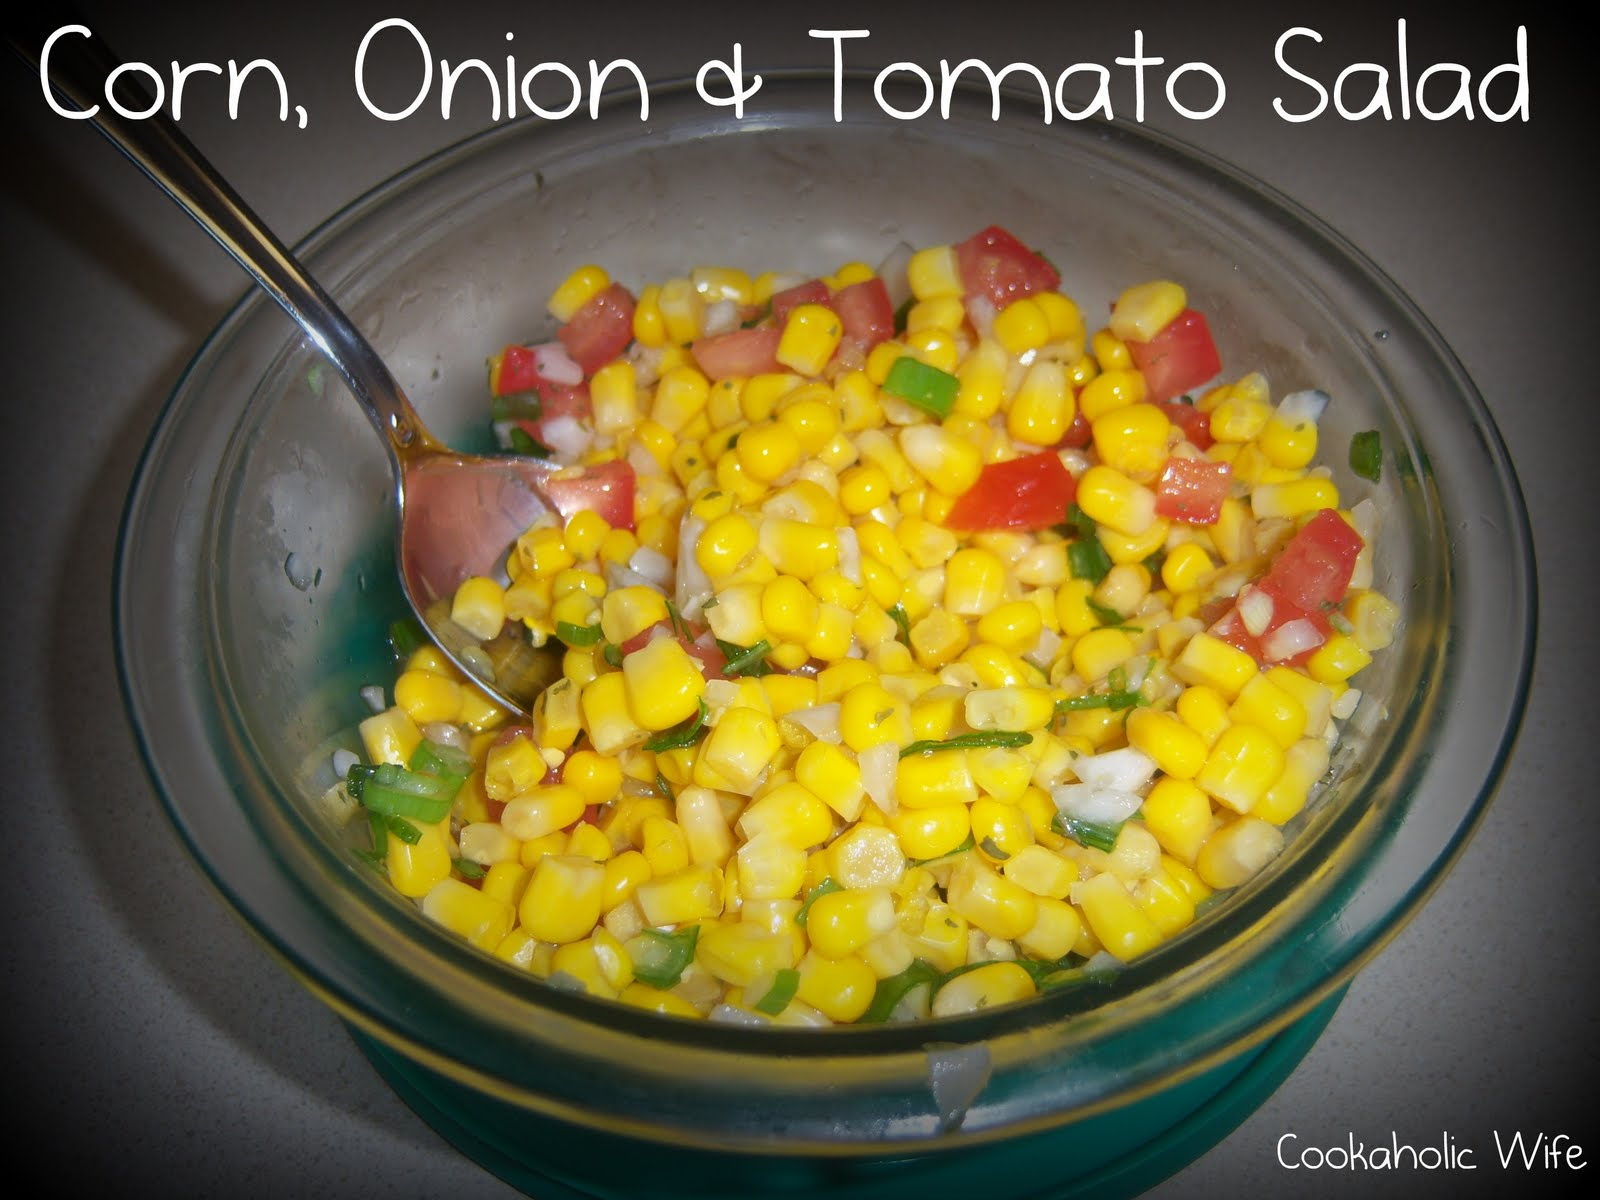 Cookaholic Wife: Corn, Onion and Tomato Salad